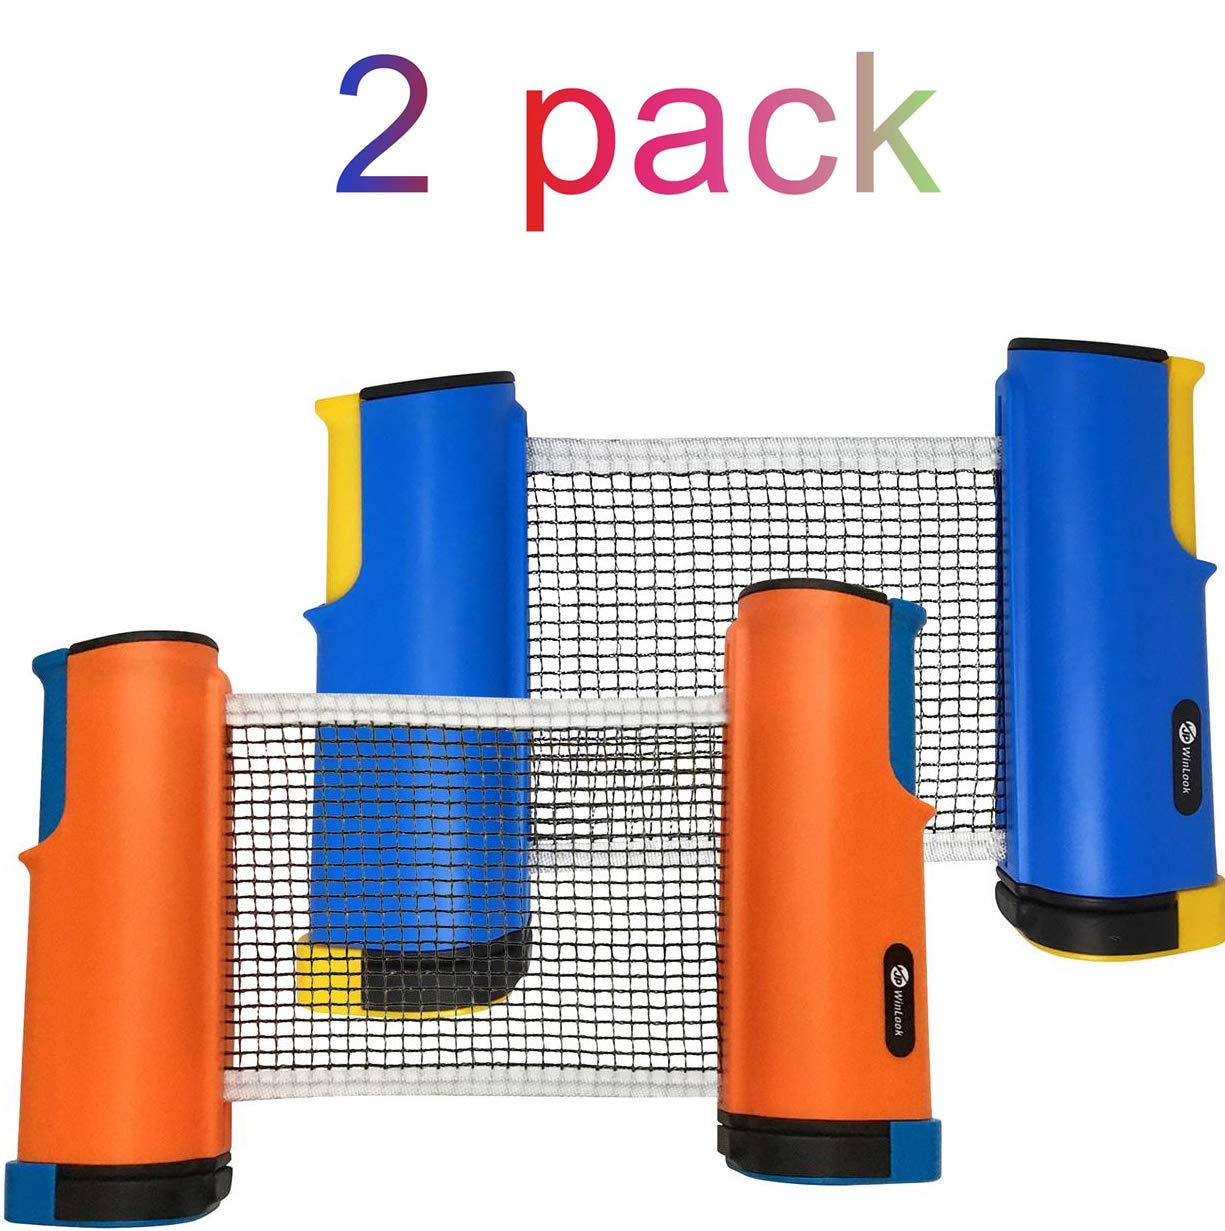 JP WinLook Ping Pong Net - 2 Pack Retractable Table Tennis Nets/Post Set Replacement, Adjustable Any Table Anywhere, Portable Holder Cover Case Bag, Indoor & Outdoor Accessories, Bracket Clamps